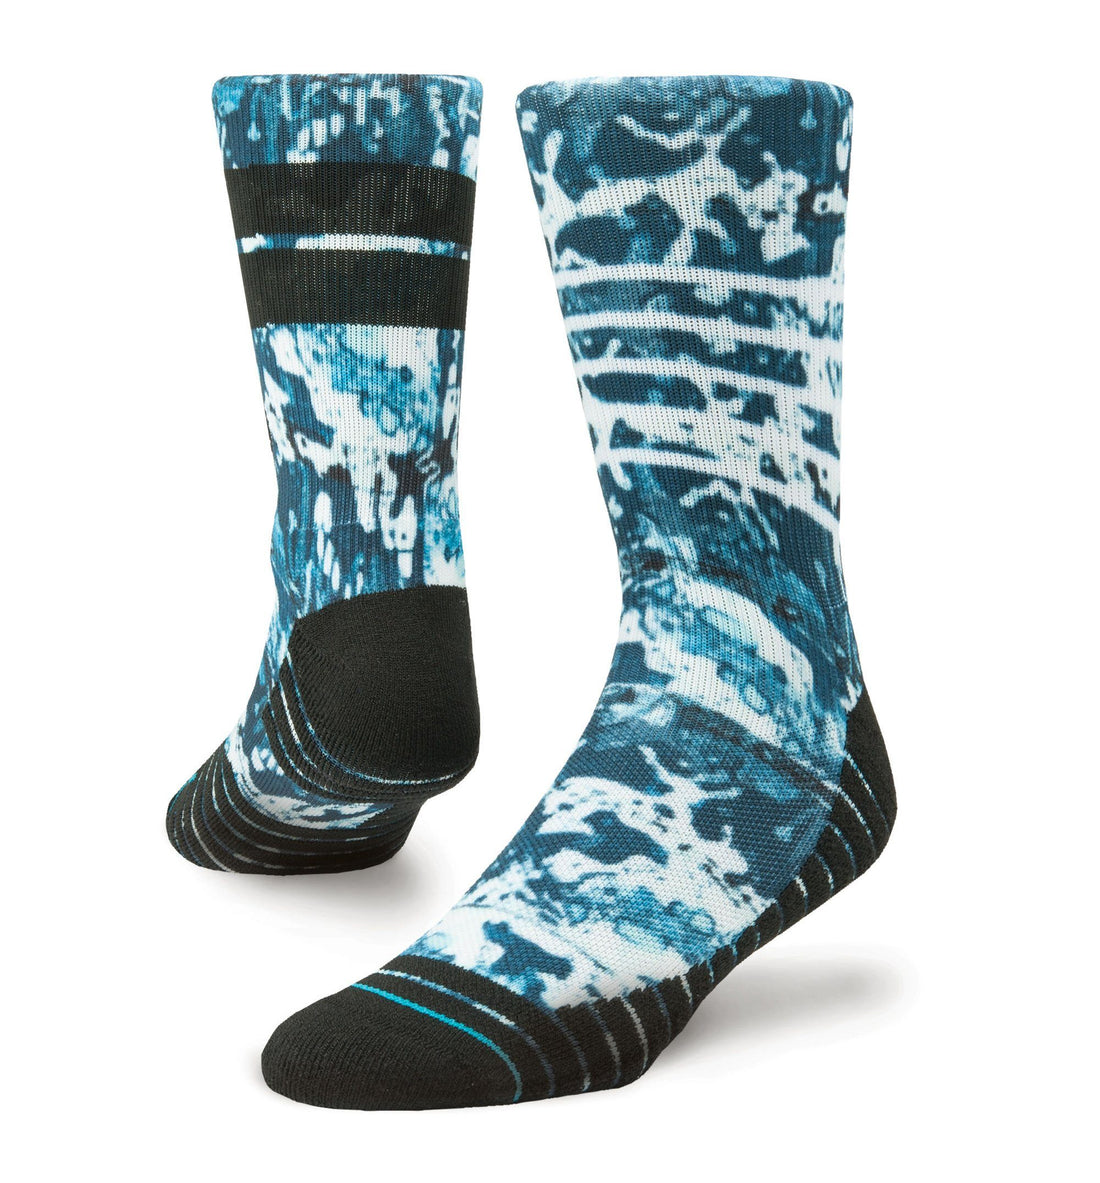 Stance FROSTBITE ATHLETIC - Socks/Underwear - Iron and Resin